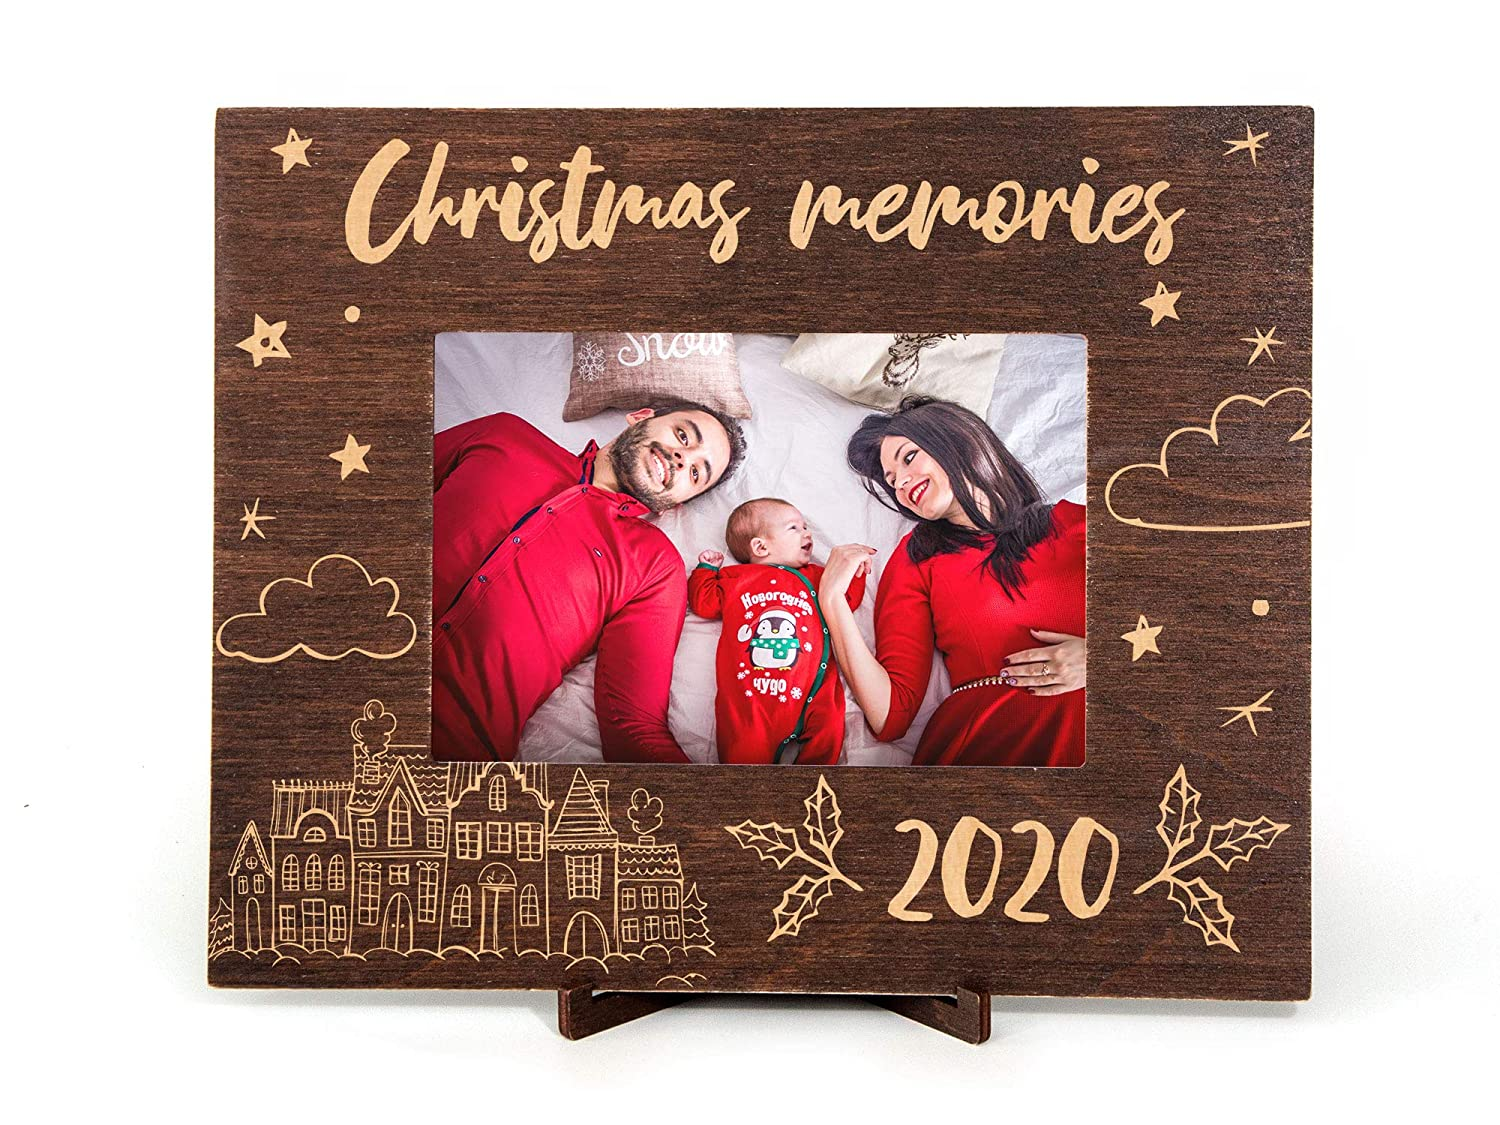 Amazon Com Christmas Picture Frames Christmas Family Gift 2020 Wood Picture Frame Custom Photo Frame Holiday Gifts For Parents Christmas Memories Wall Frame New Home Gift Custom Christmas Frame 4x6 Inches Handmade